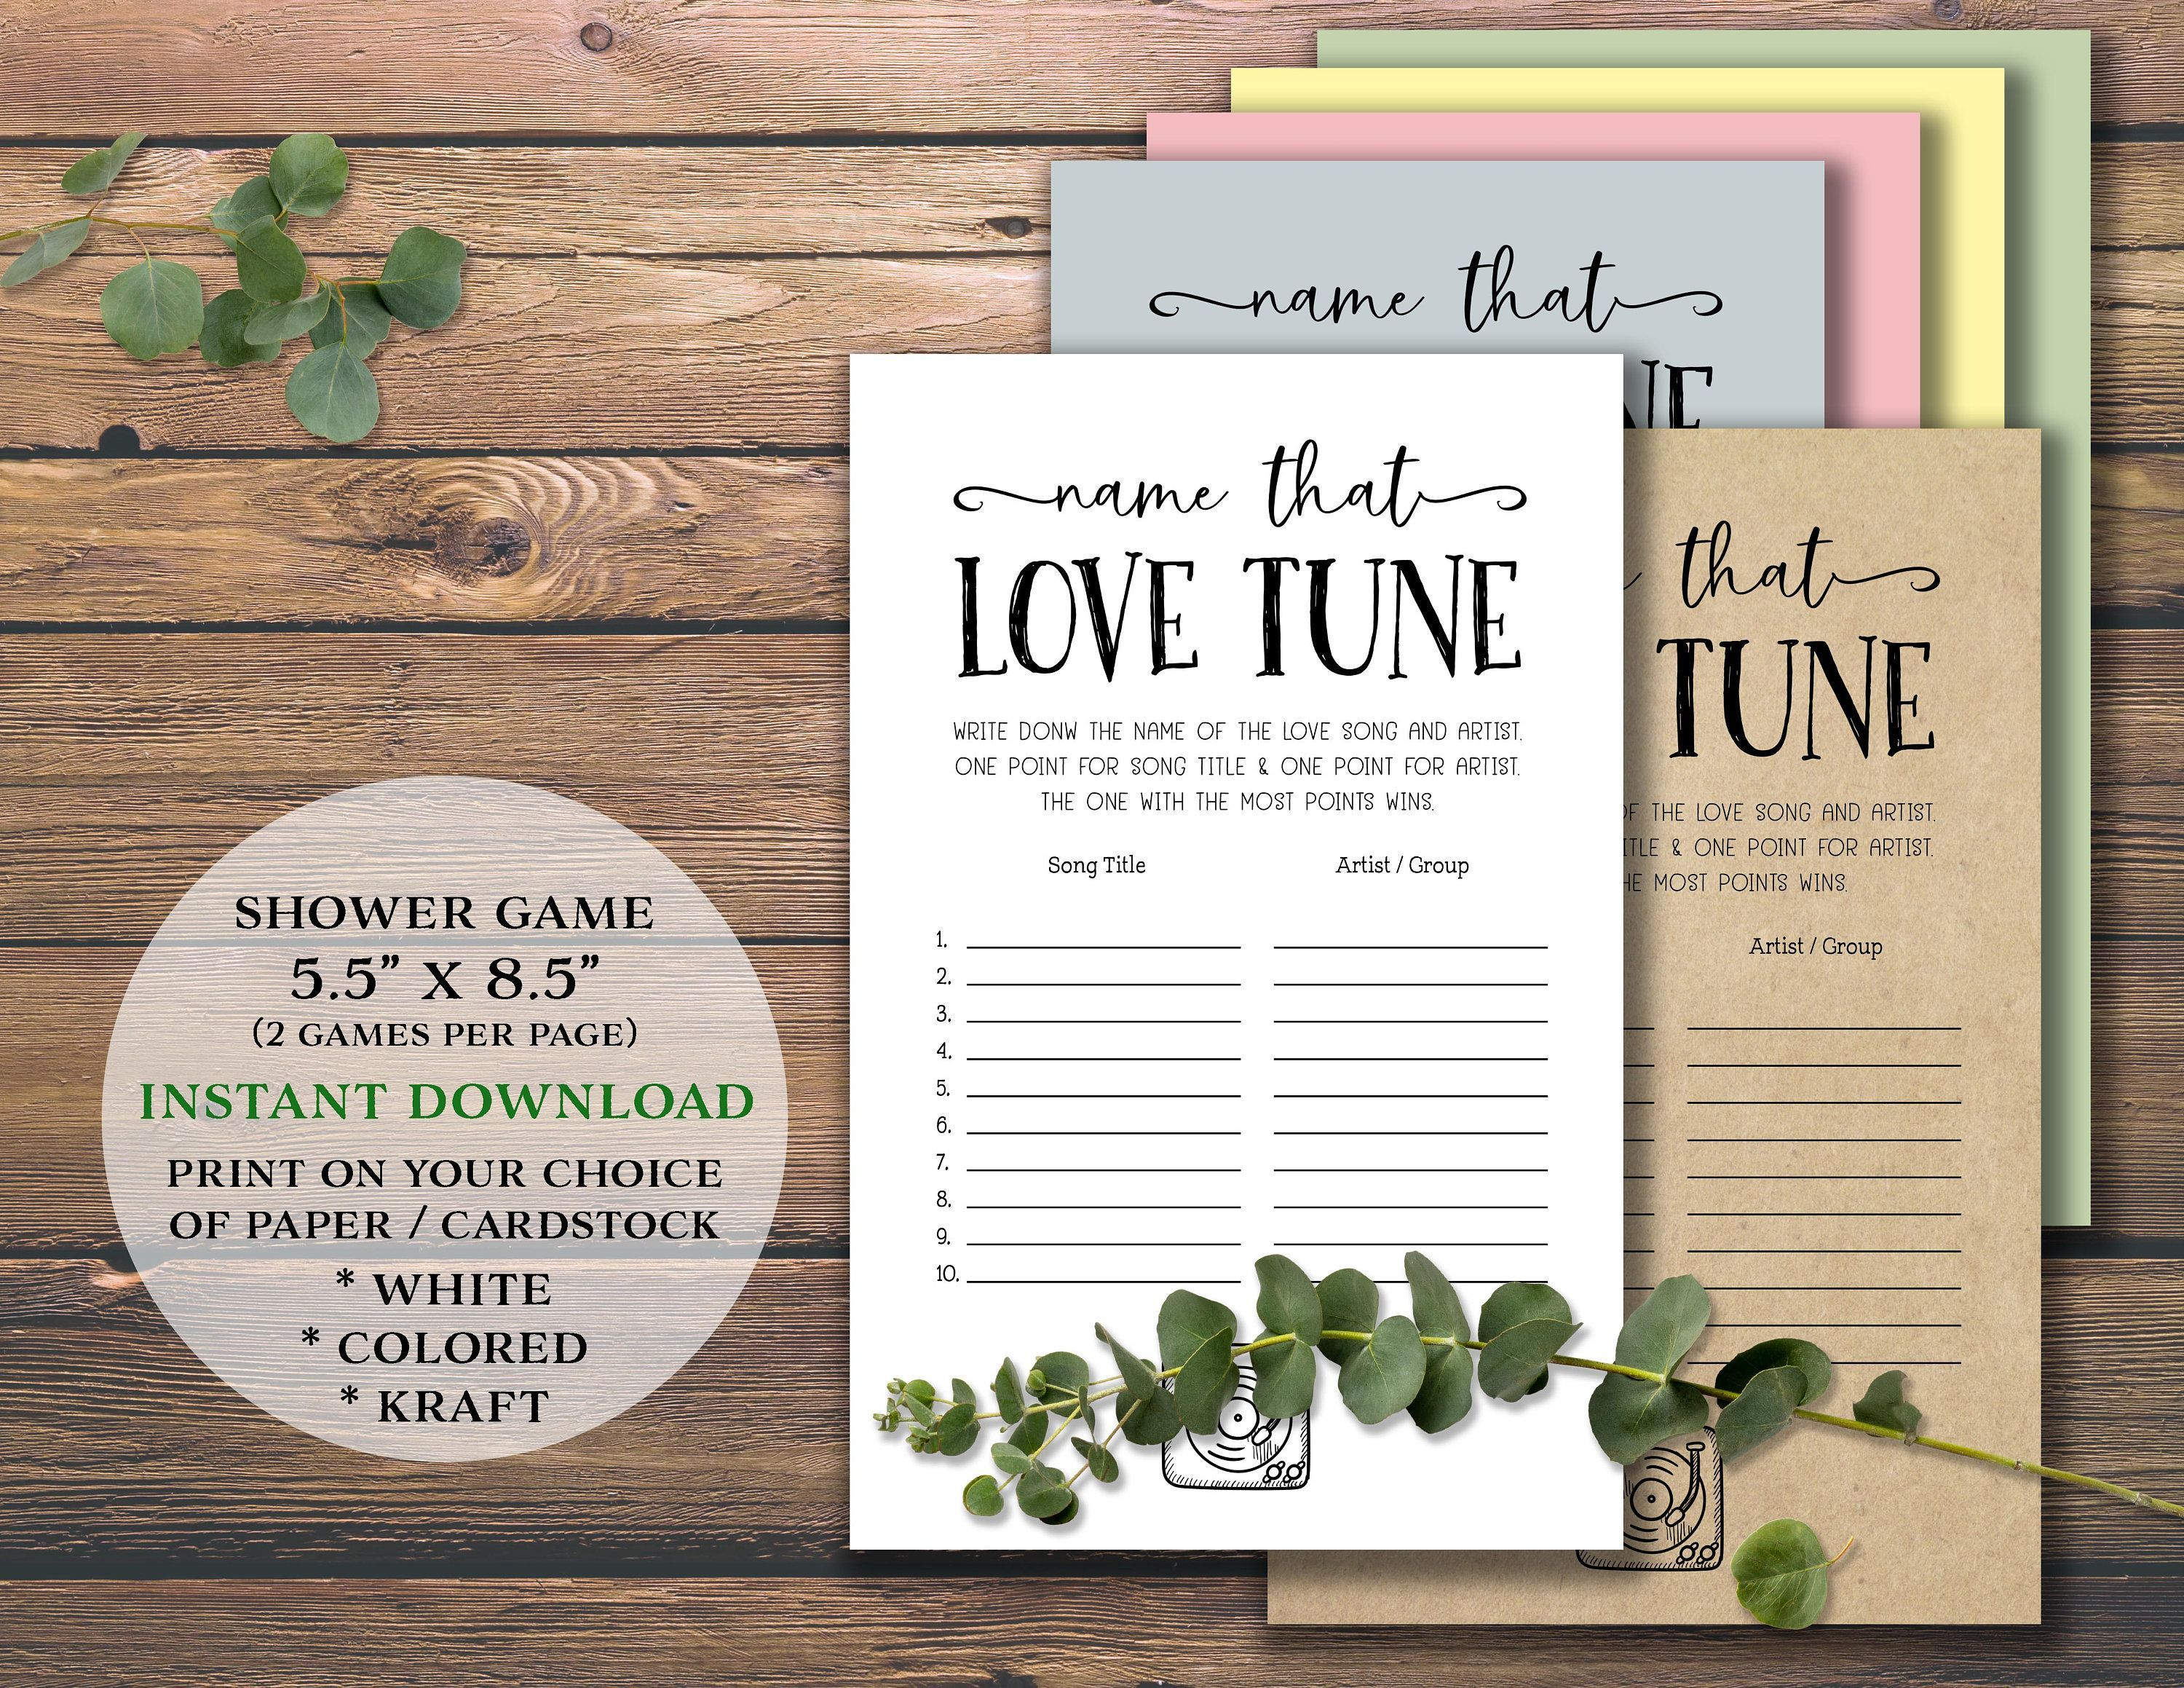 Name That Love Tune Bridal Shower Game Instant Download Printable For Wedding Marriage Bride Party Rustic Simple Guessing Music Game Barbara F Geschenke